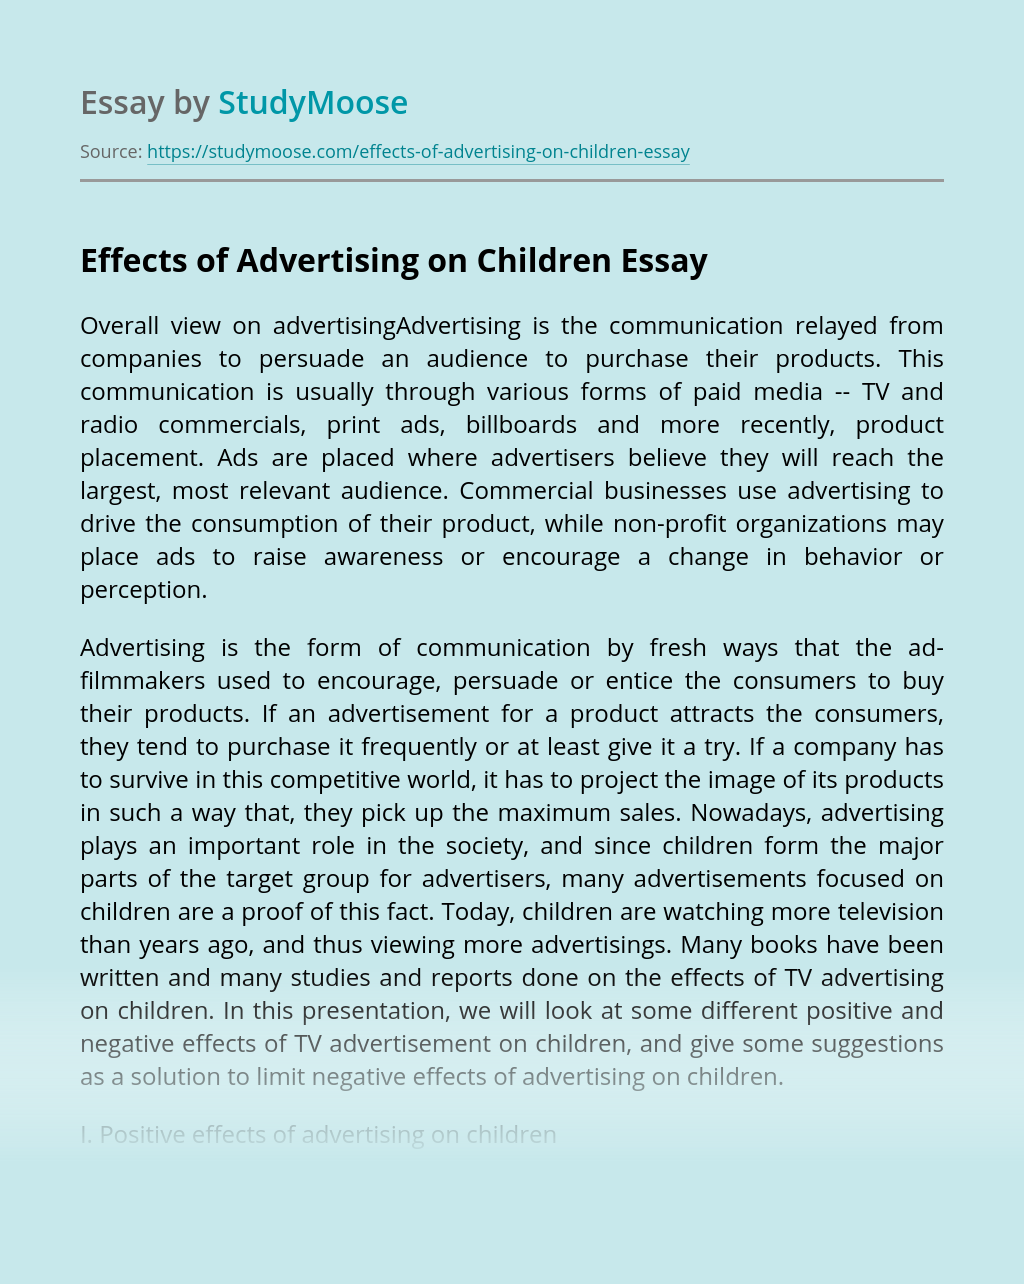 Effects of Advertising on Children